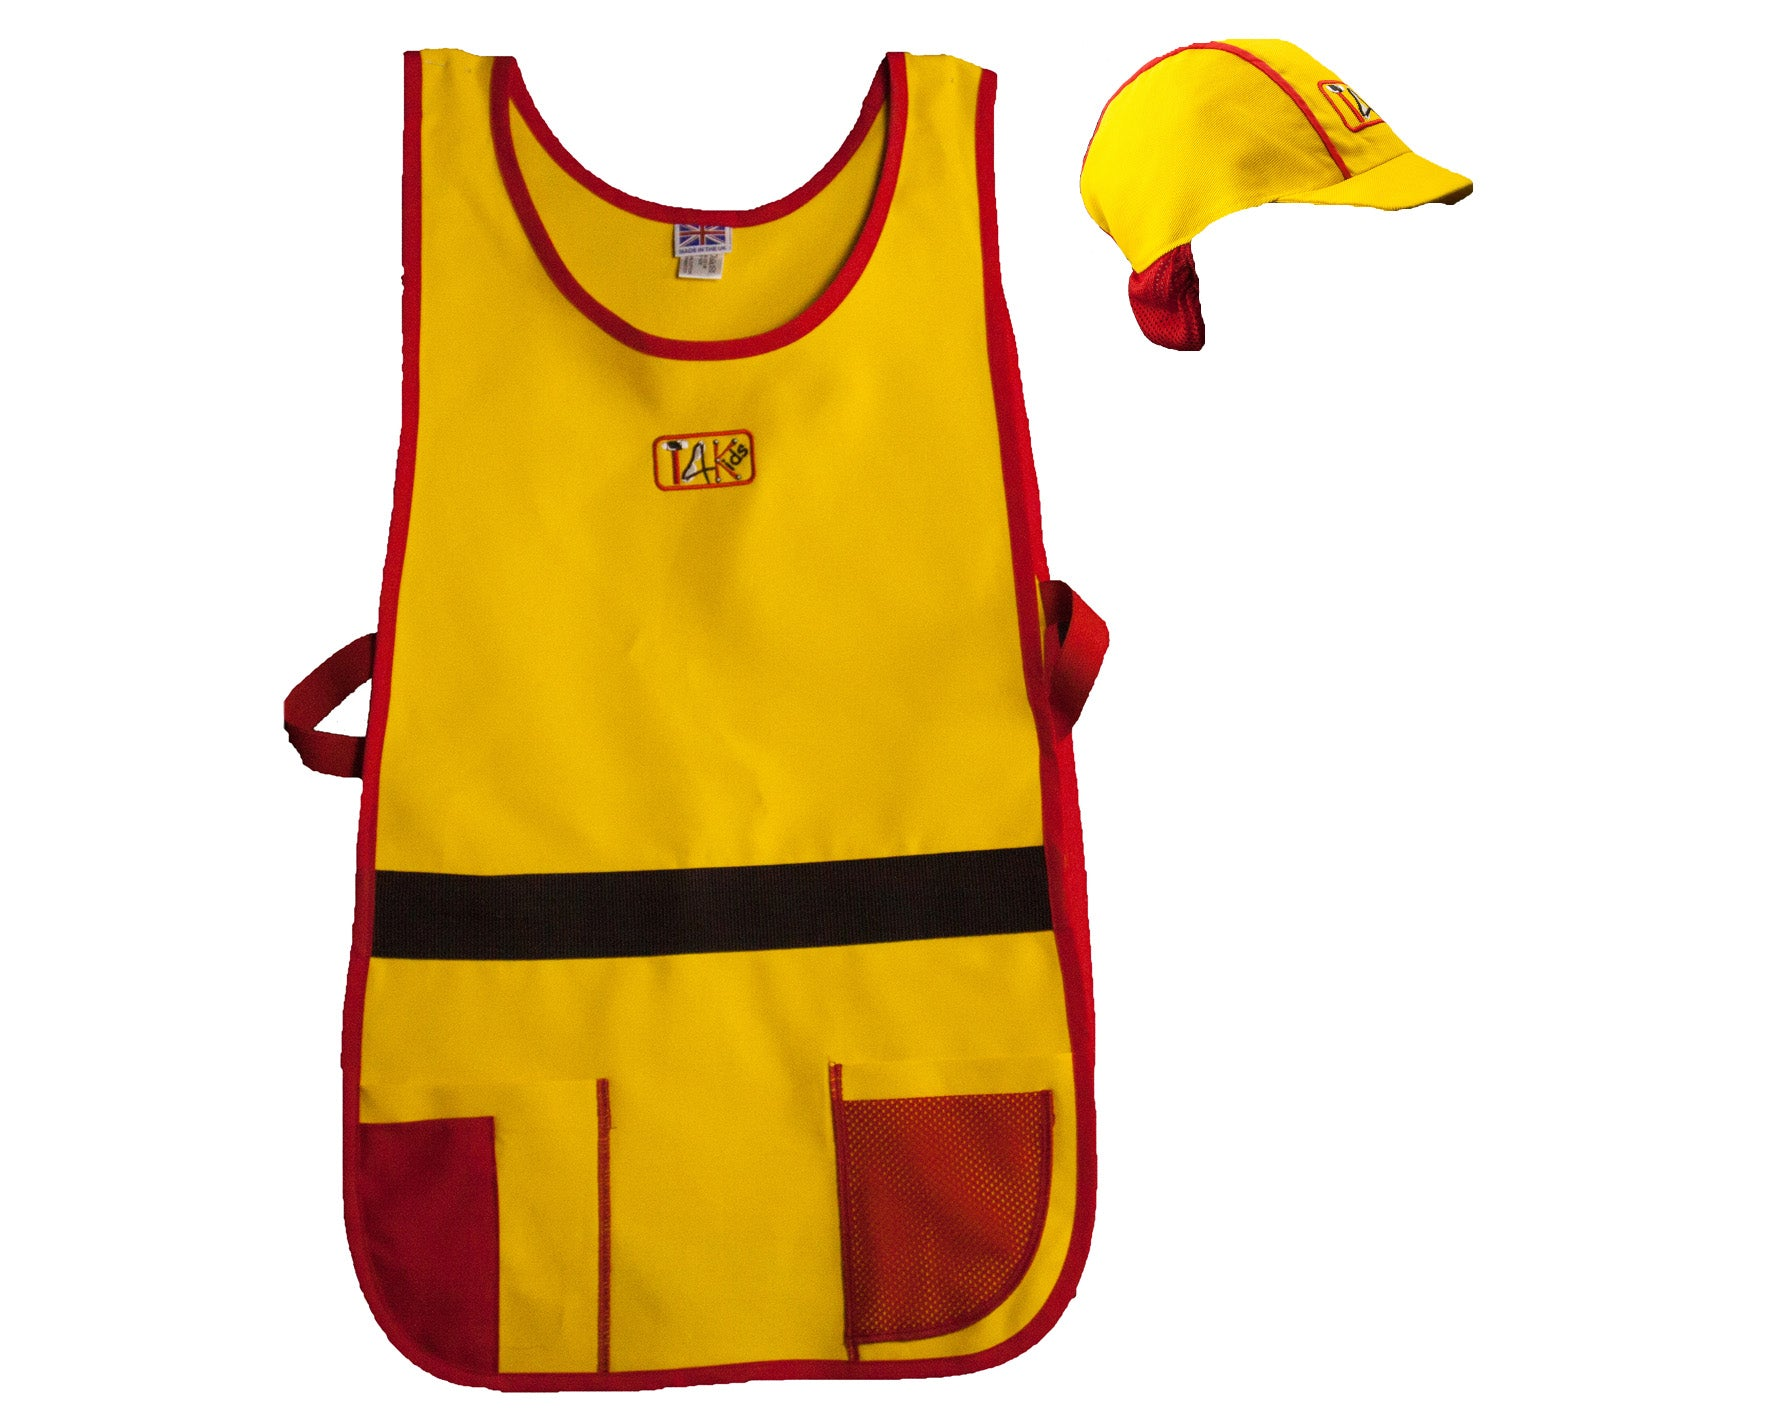 Tinkering workwear set® - Child size (No safety glasses)